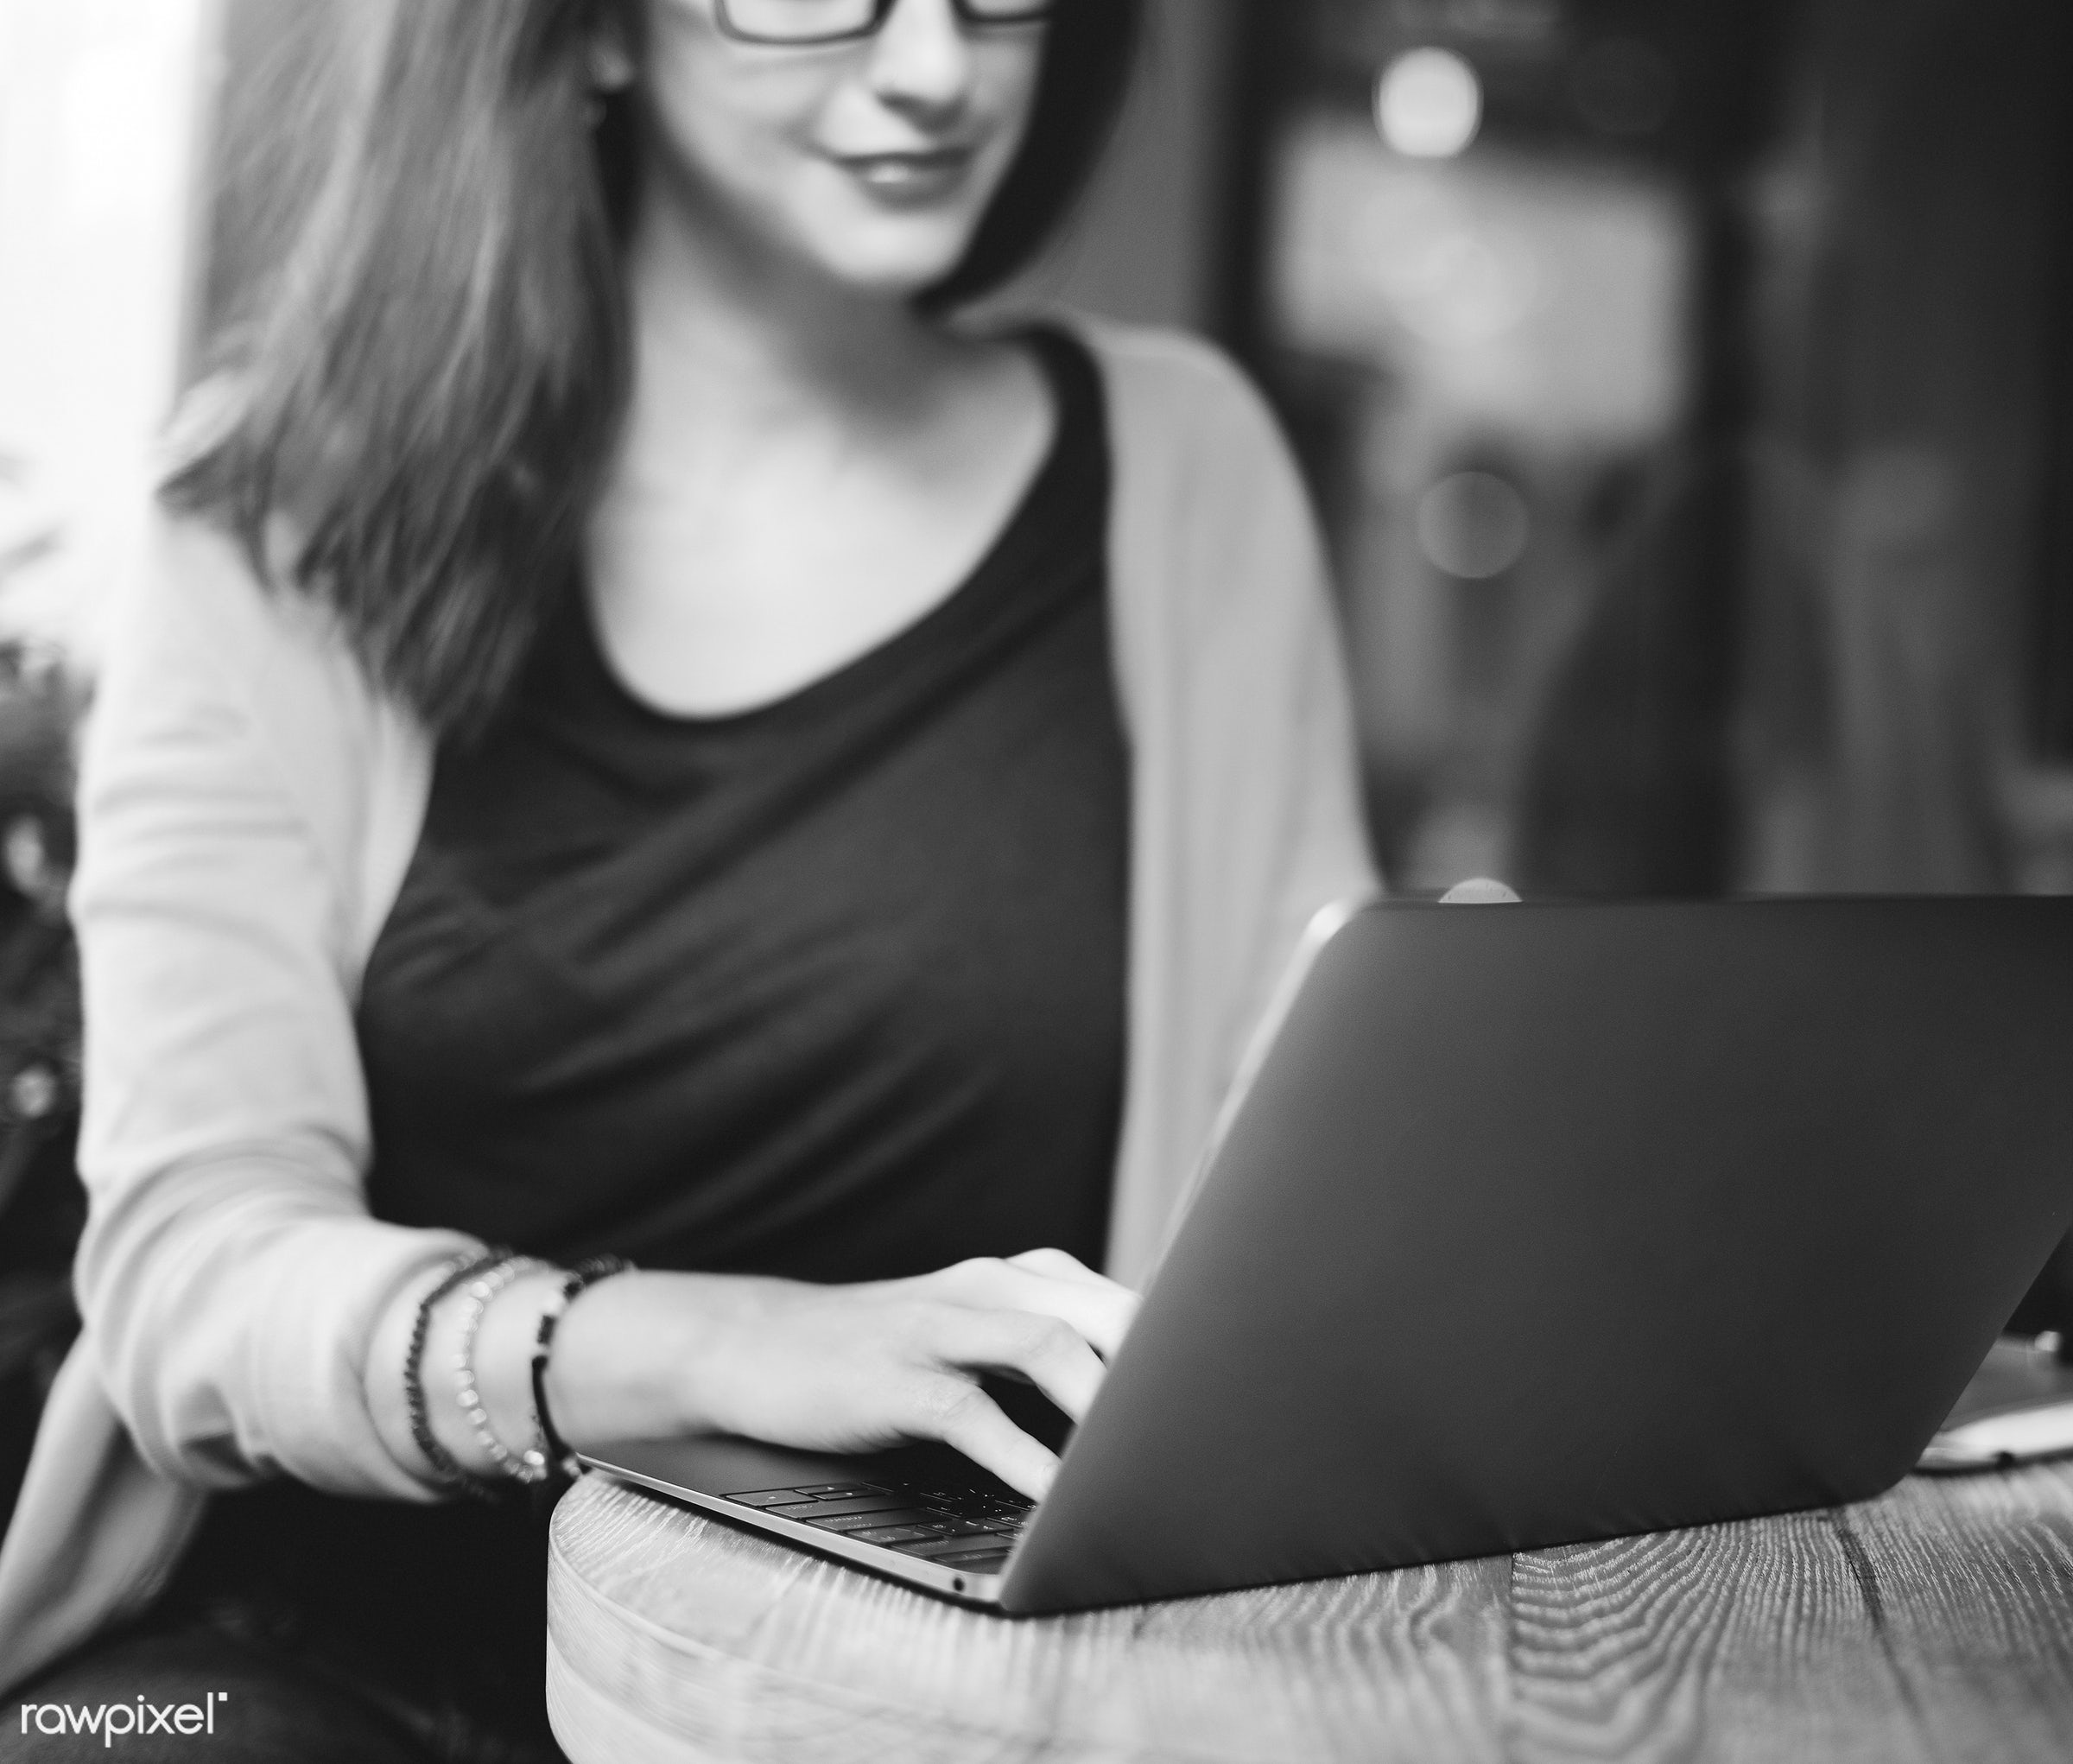 adult, alone, browsing, cafe, casual, college, communication, connection, digital device, education, girl, glasses, global...